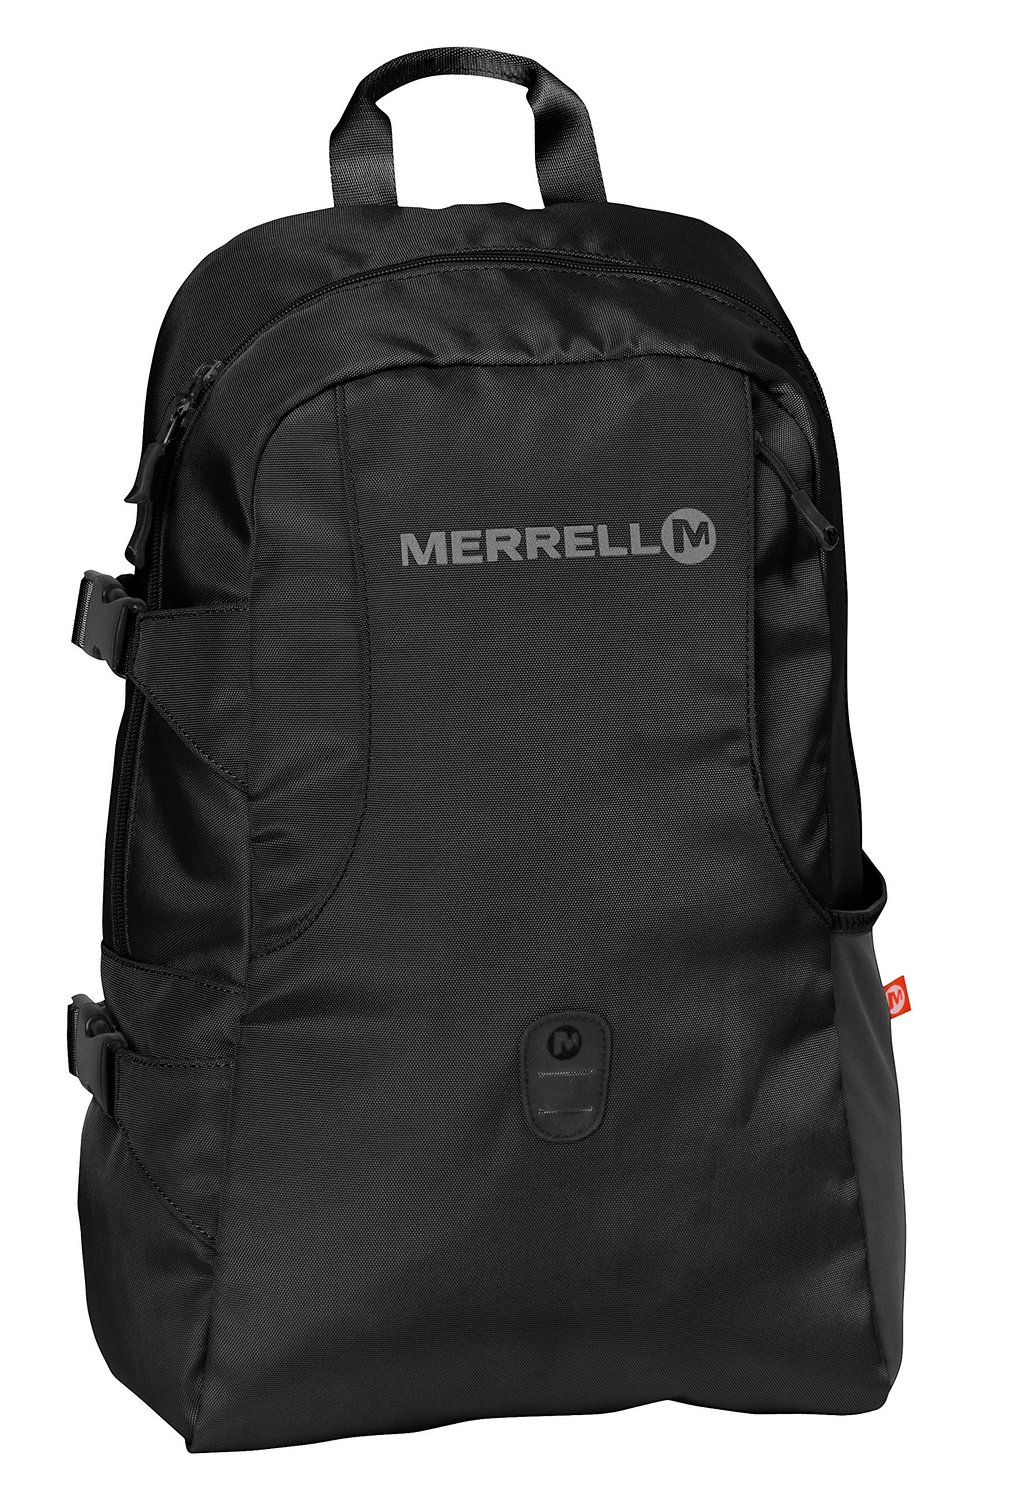 abb24f74549 Cheap Merrell Backpack, find Merrell Backpack deals on line at ...